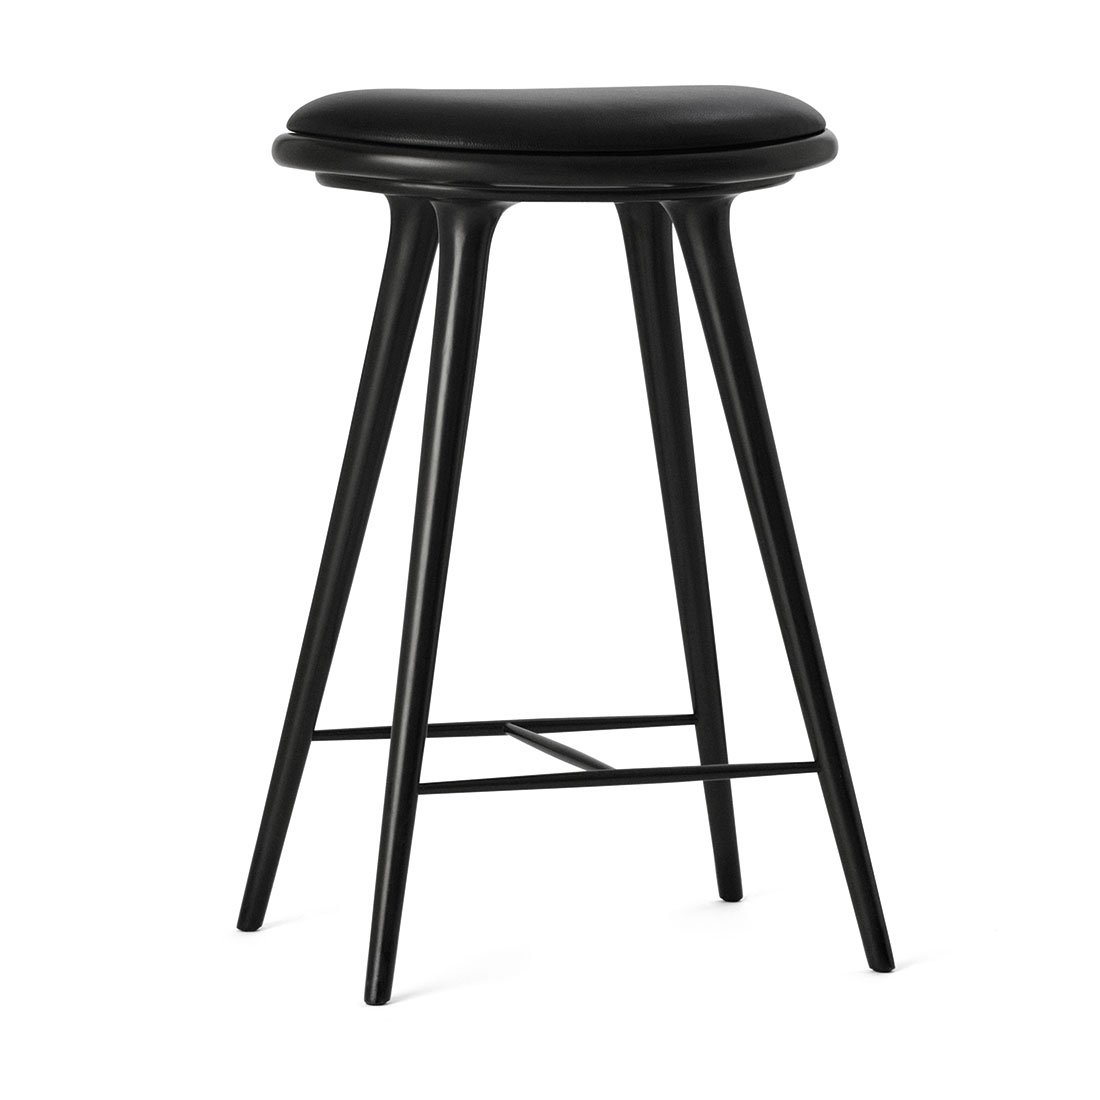 High Stool Black Stained Beechwood 69 cm Mater